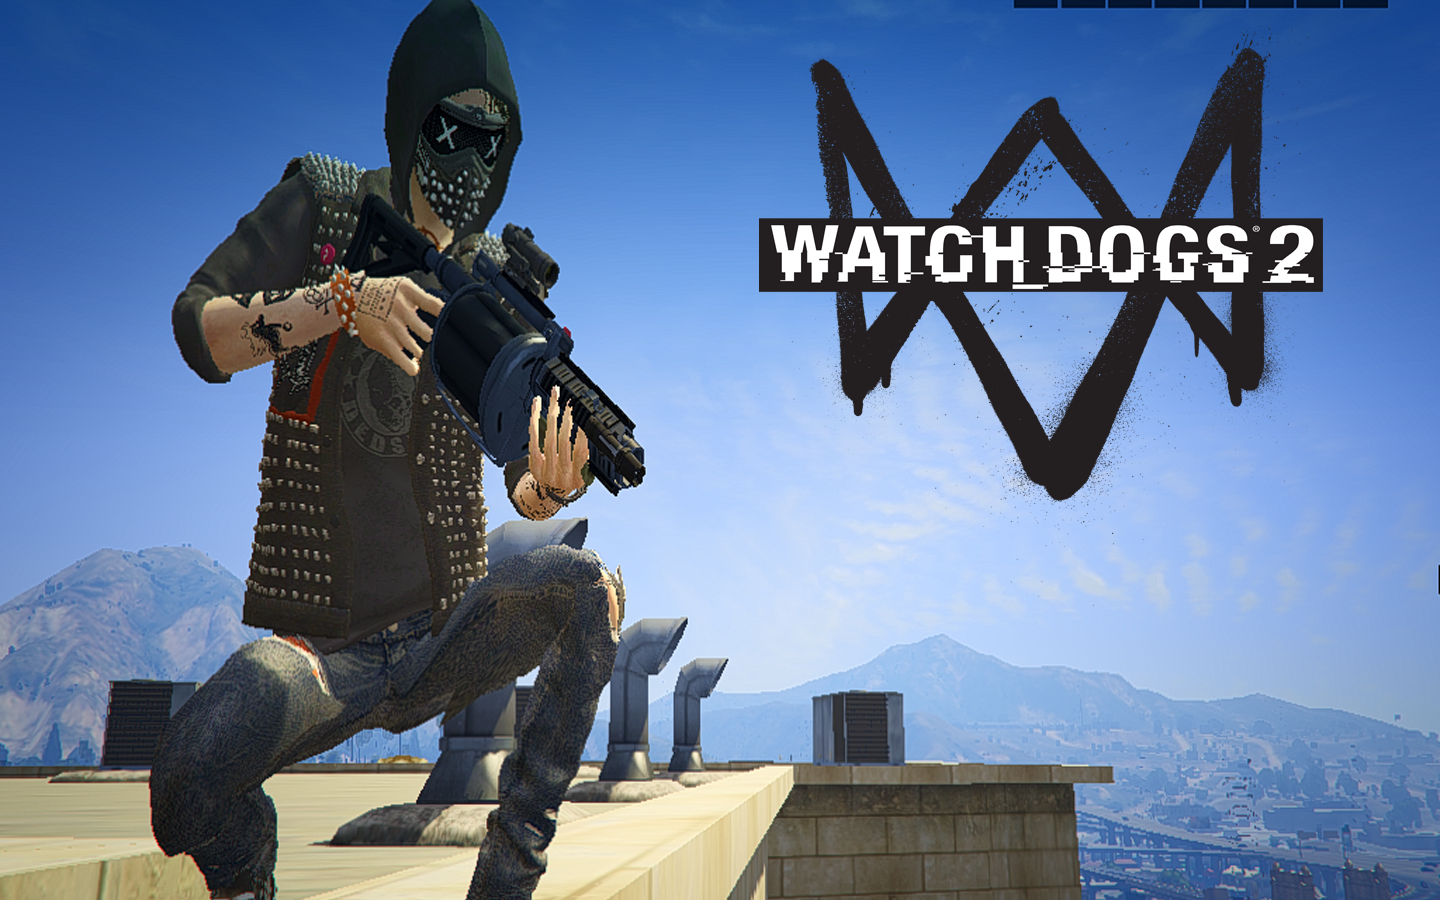 Wrench From Watch Dogs 2: Watch Dogs 2: Wrench